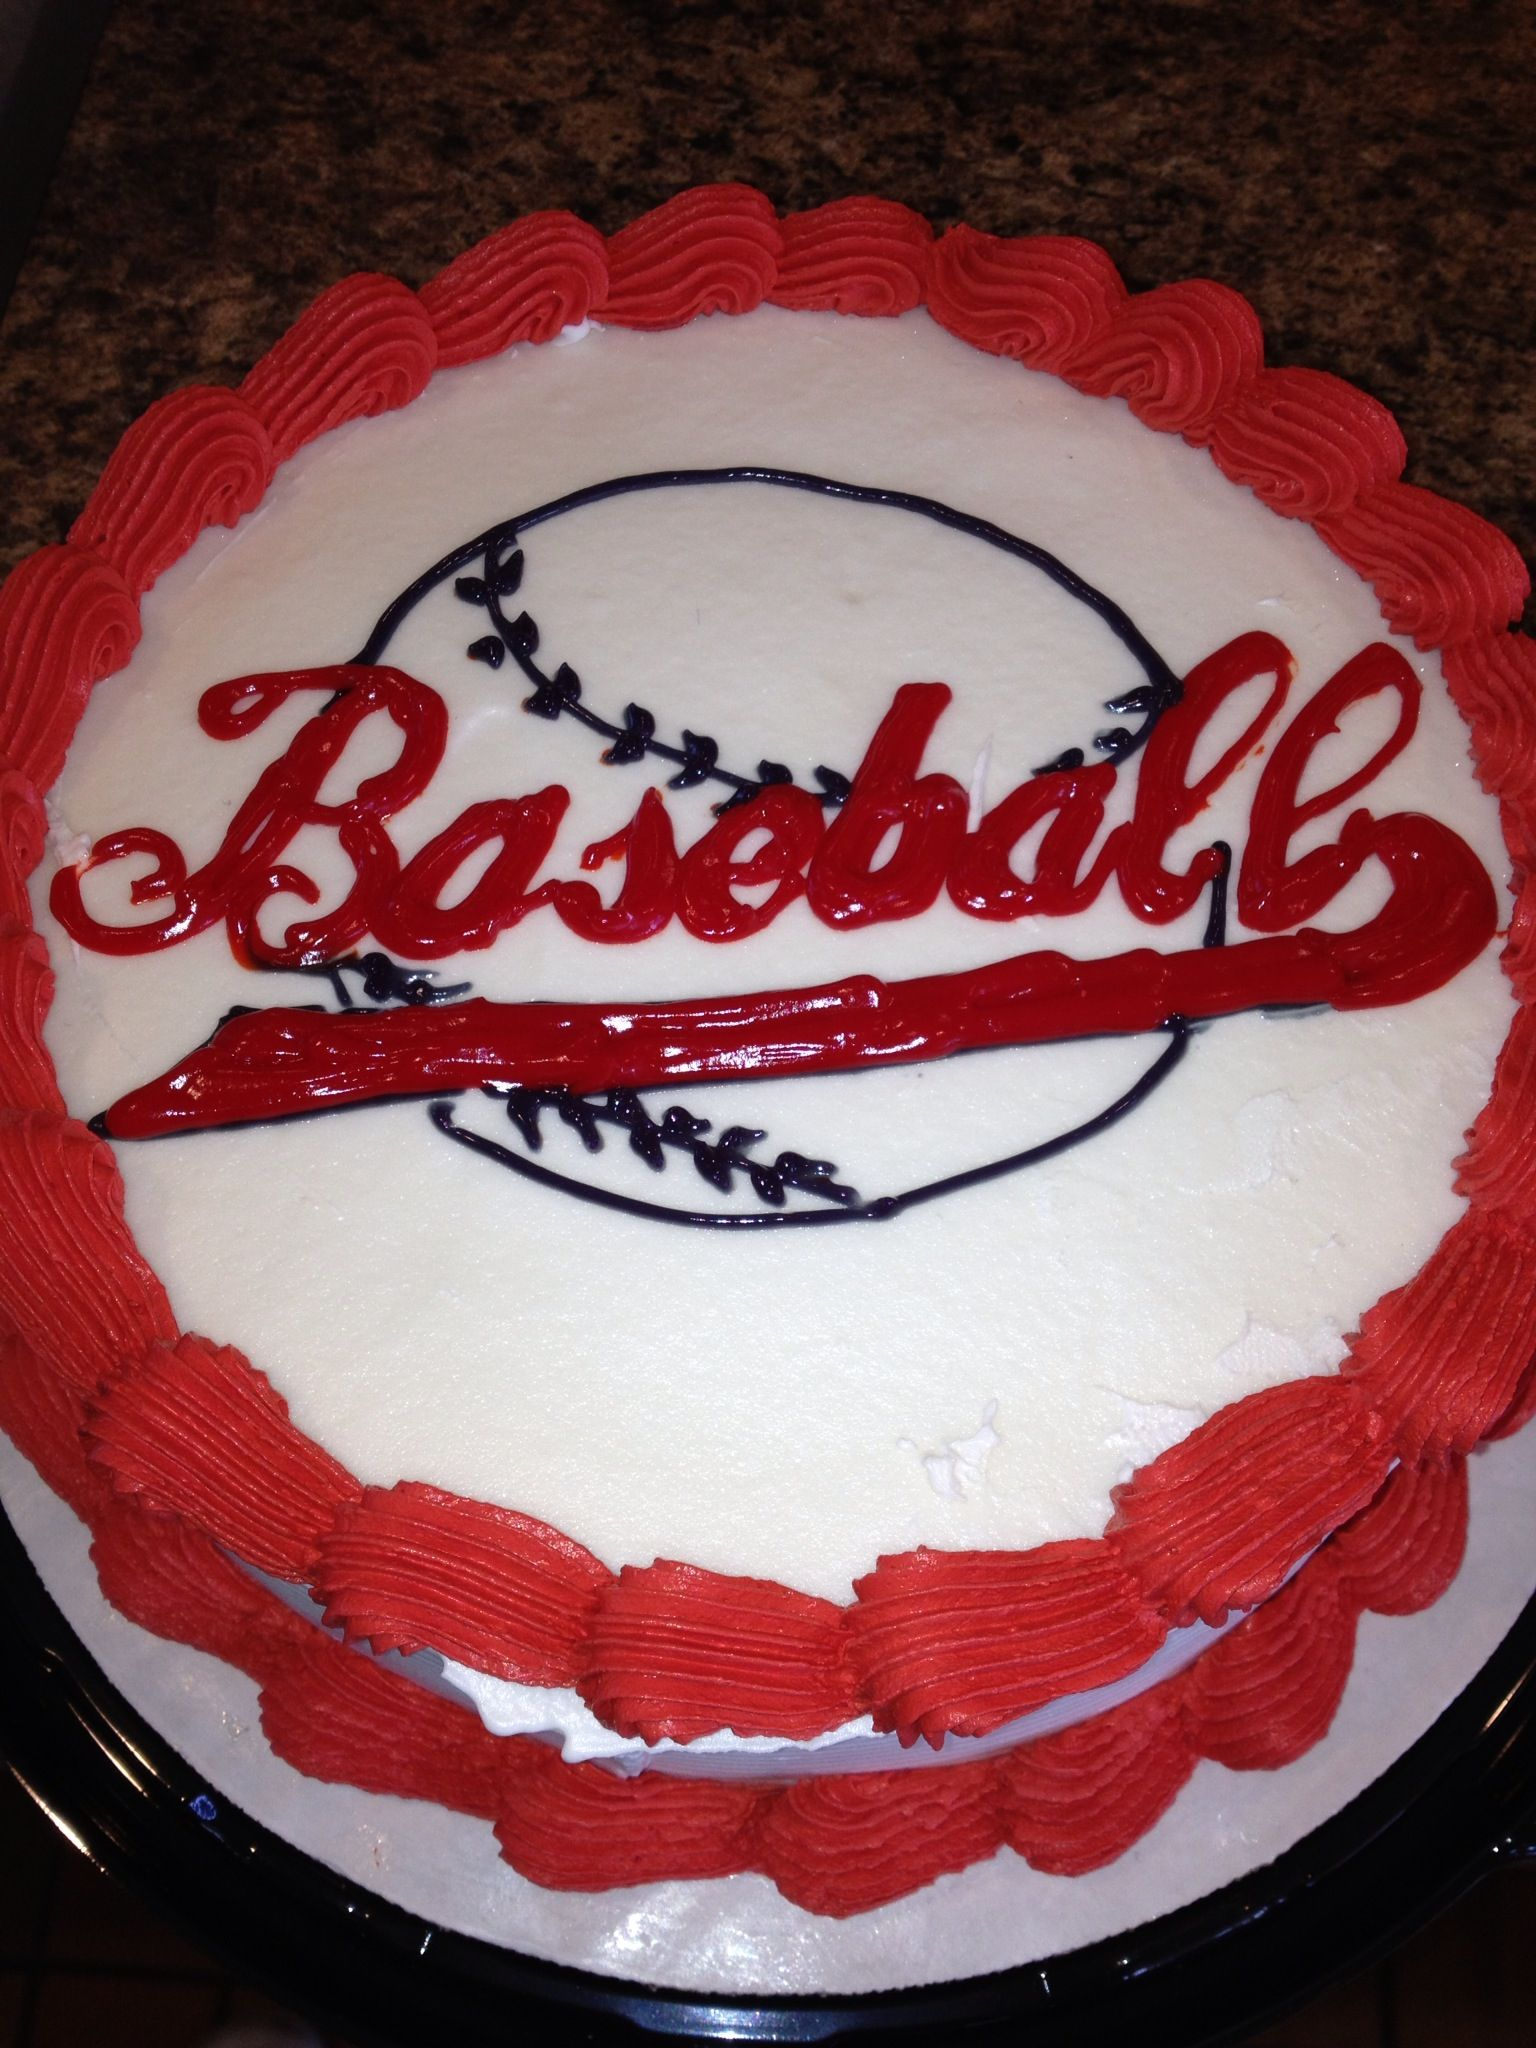 Dq cakes...Dairy Queen. Baseball anyone? | Cake, Dairy ...